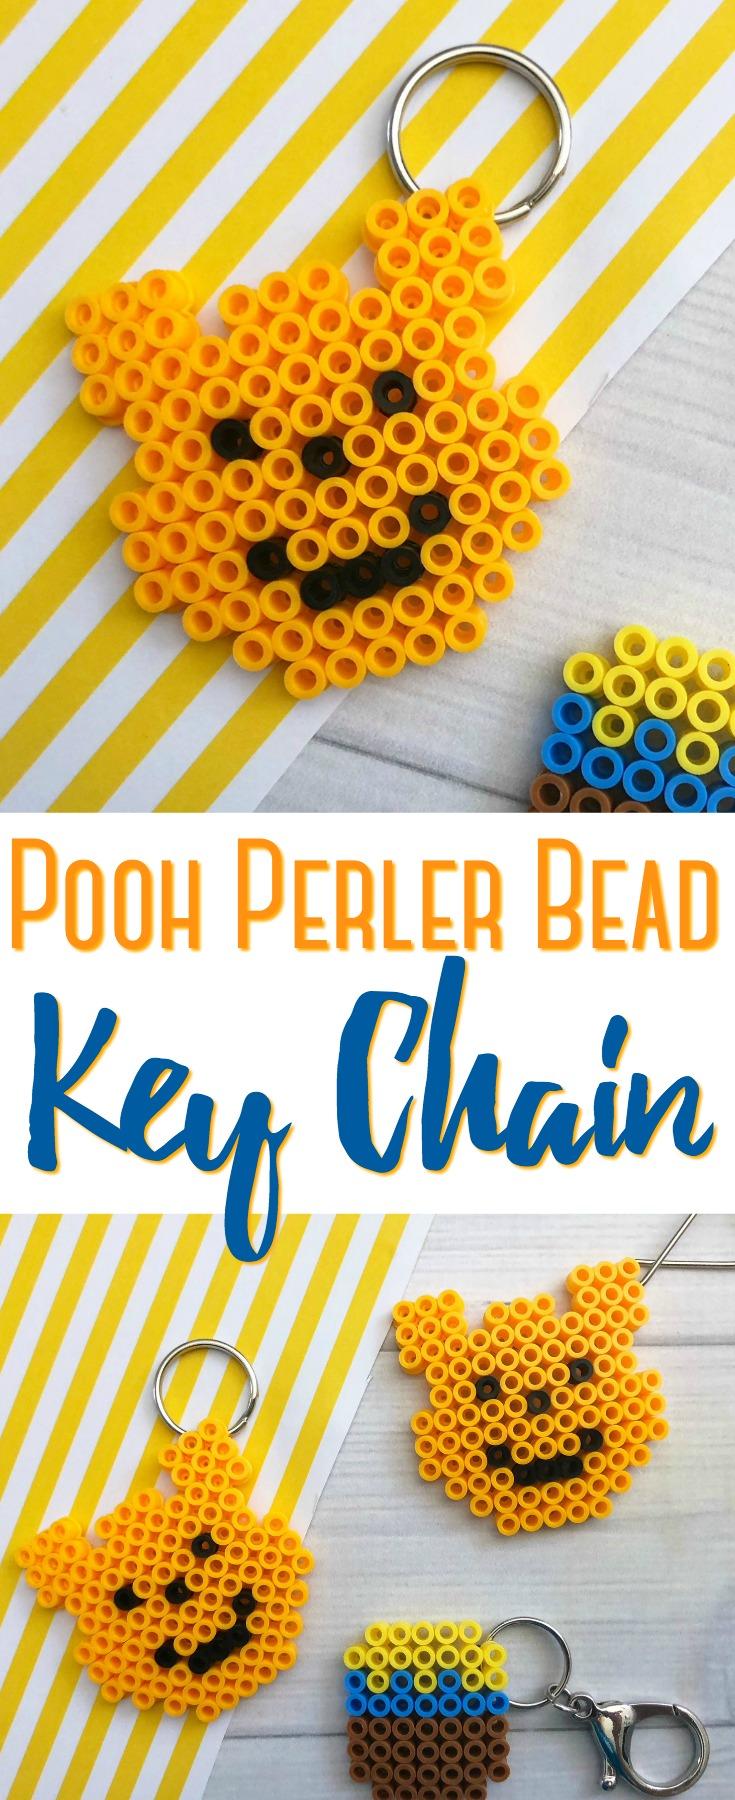 This Pooh Perler Bead Keychain is simple to make and surprisingly cute to make year round! They are a fun way to keep kids busy on hot or rainy days!